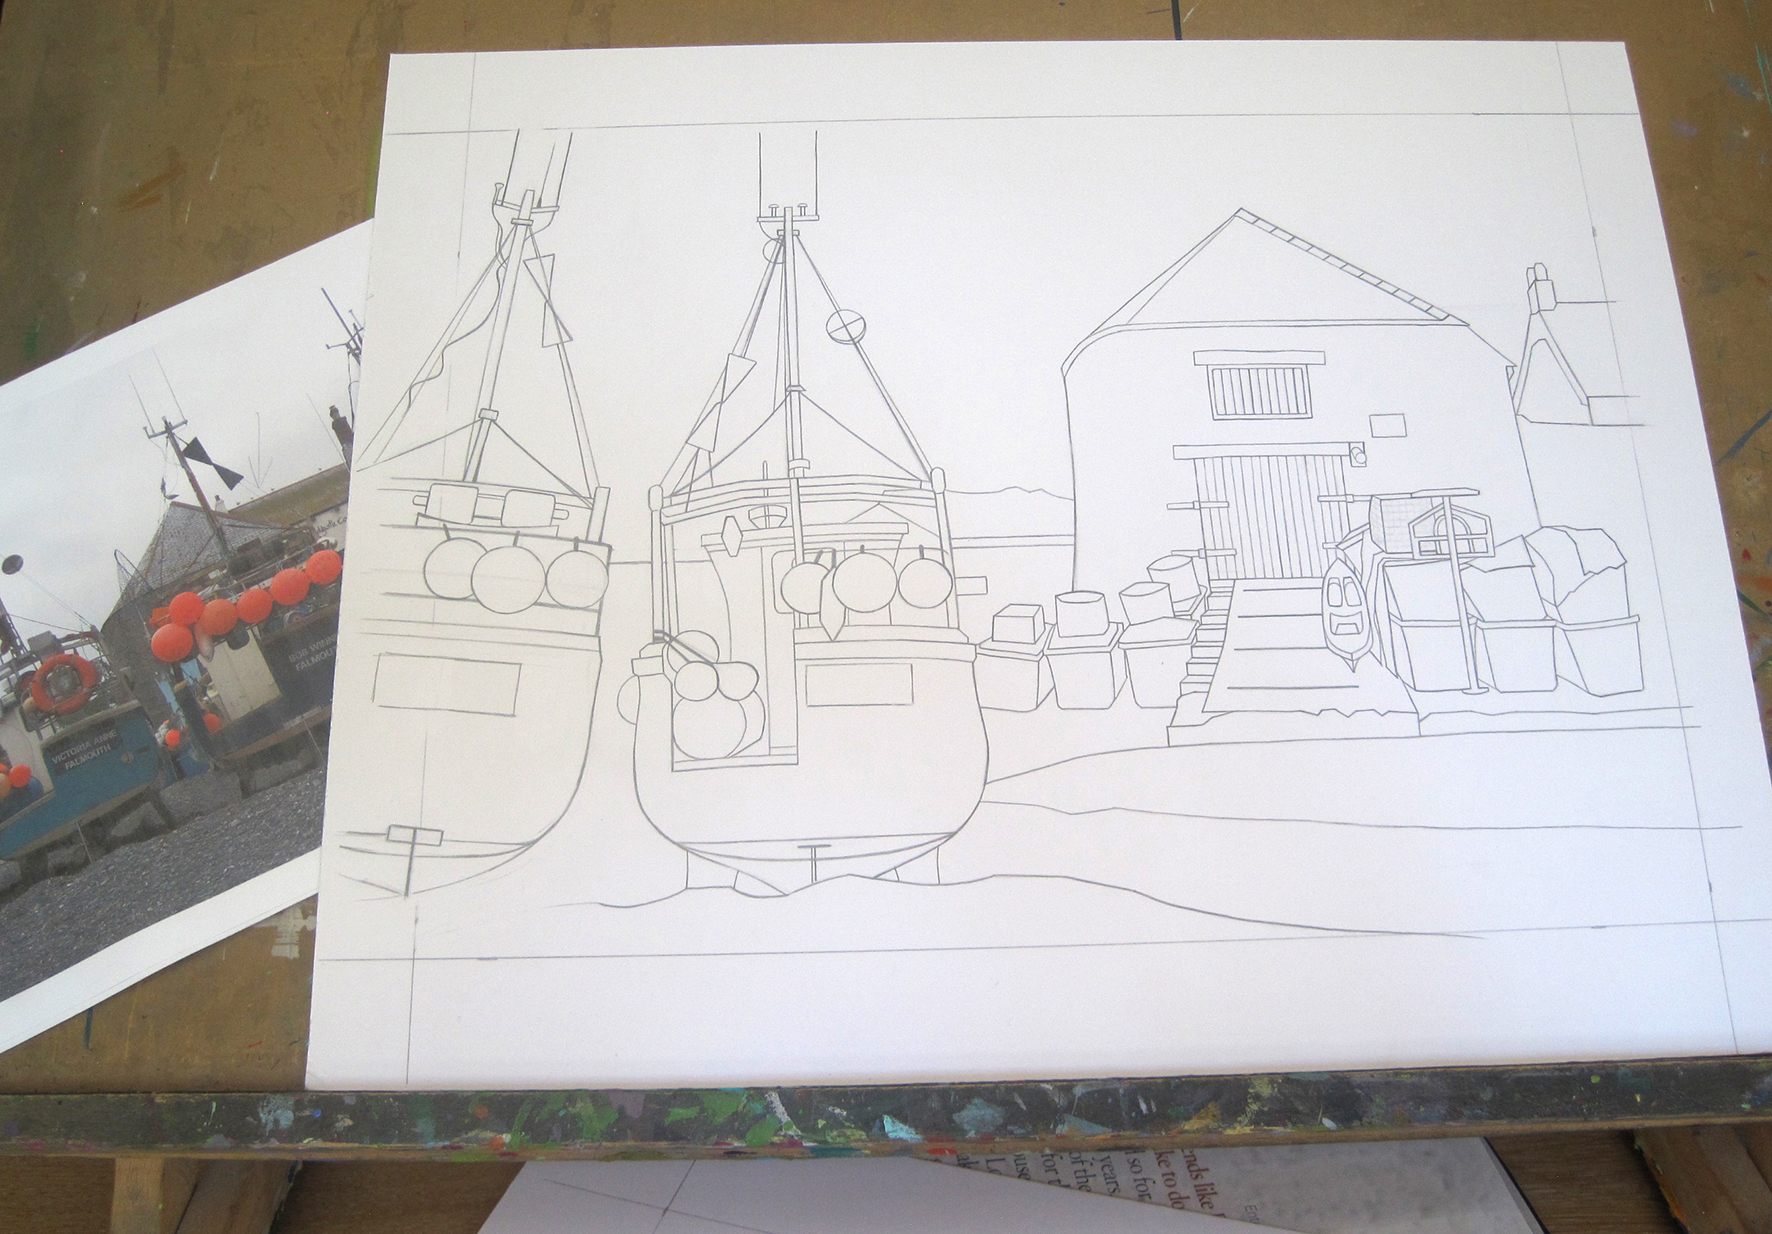 1 - Using sketches and photographs taken in the field, the composition is drawn onto board or canvas